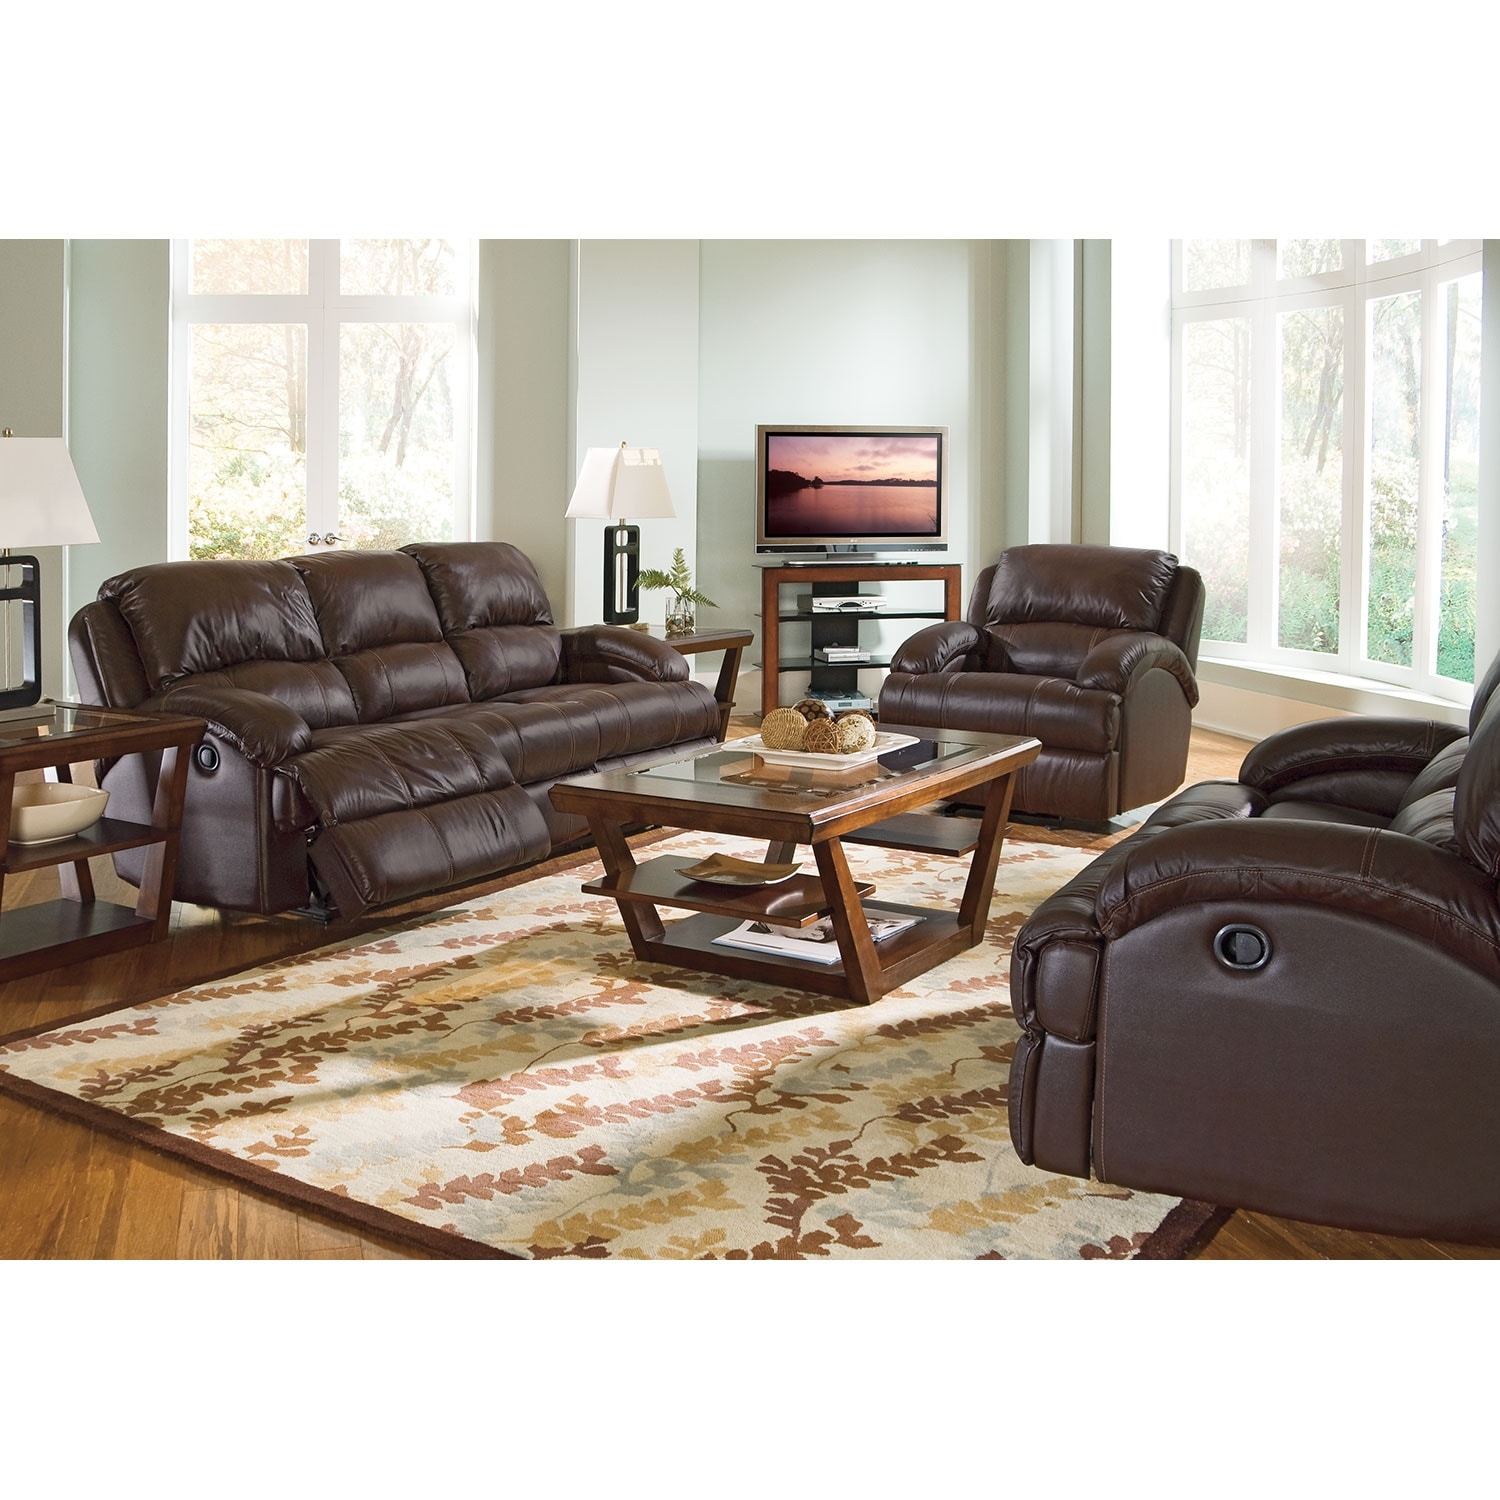 Nolan Dual Reclining Sofa - Chocolate | American Signature Furniture